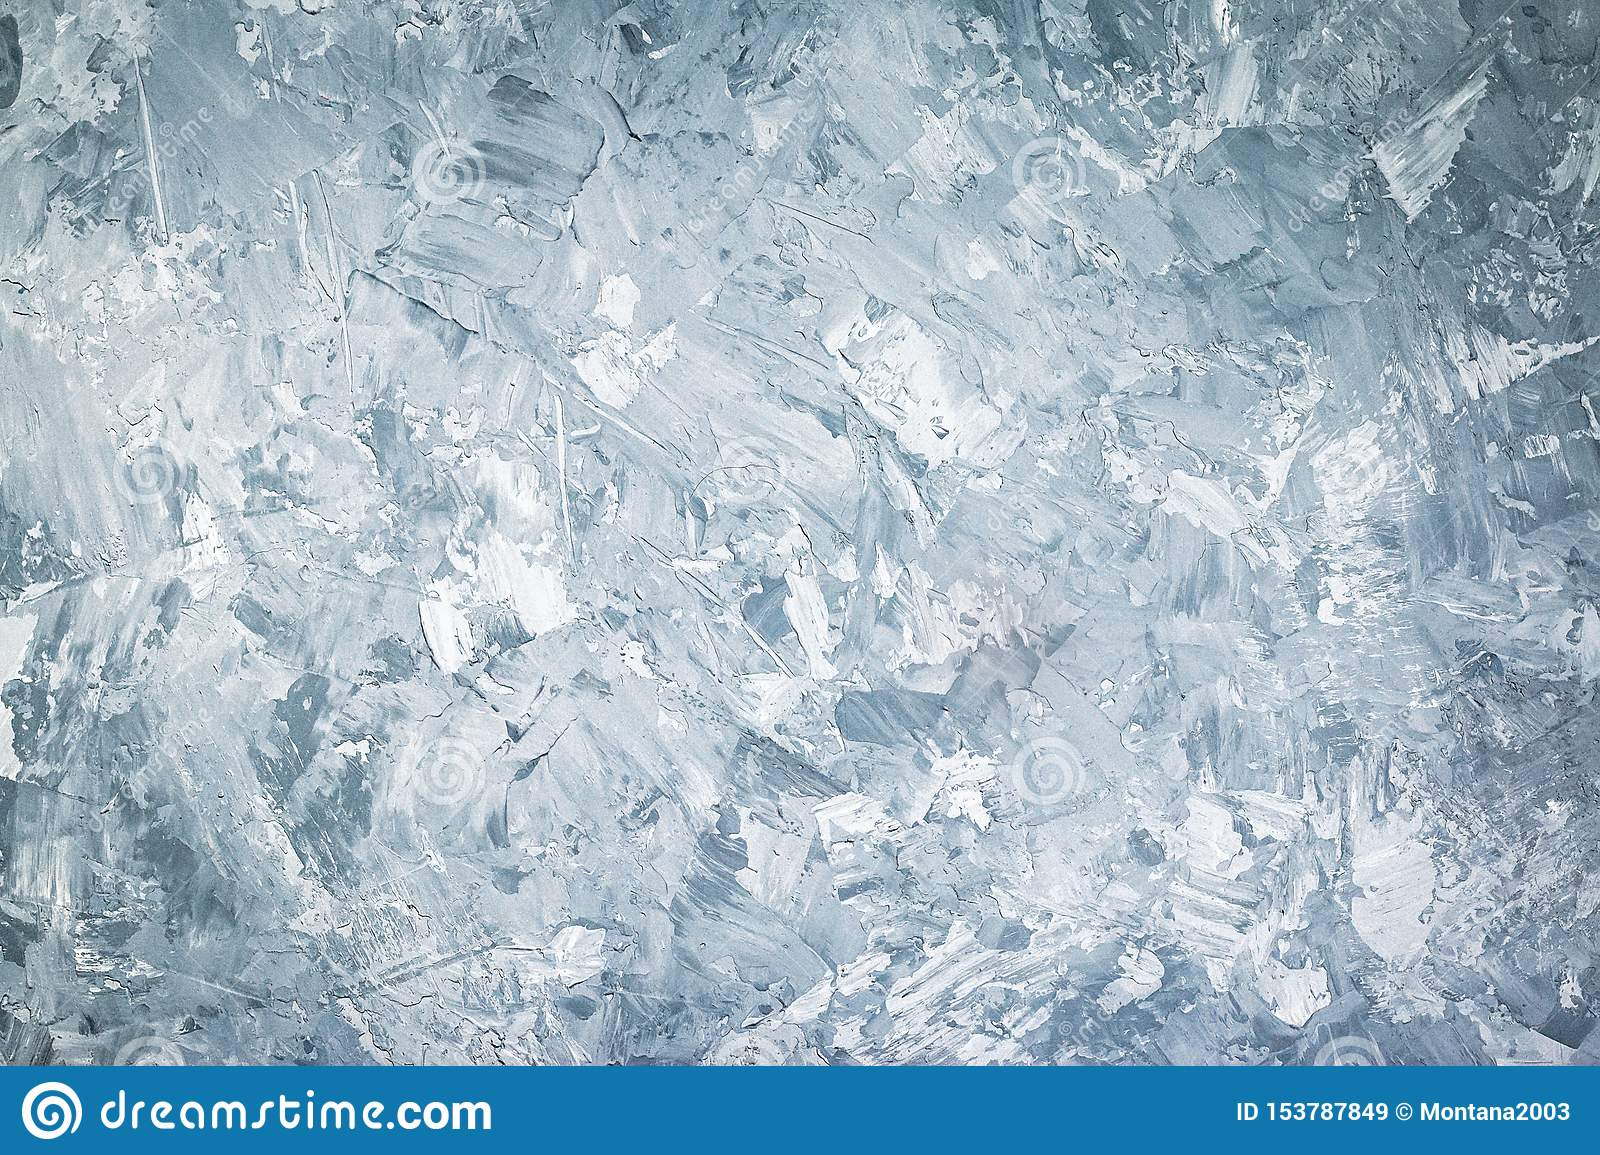 Abstract grunge decorative blue or grey stucco wall background. Web banner or wallpaper, copy space, horizontal